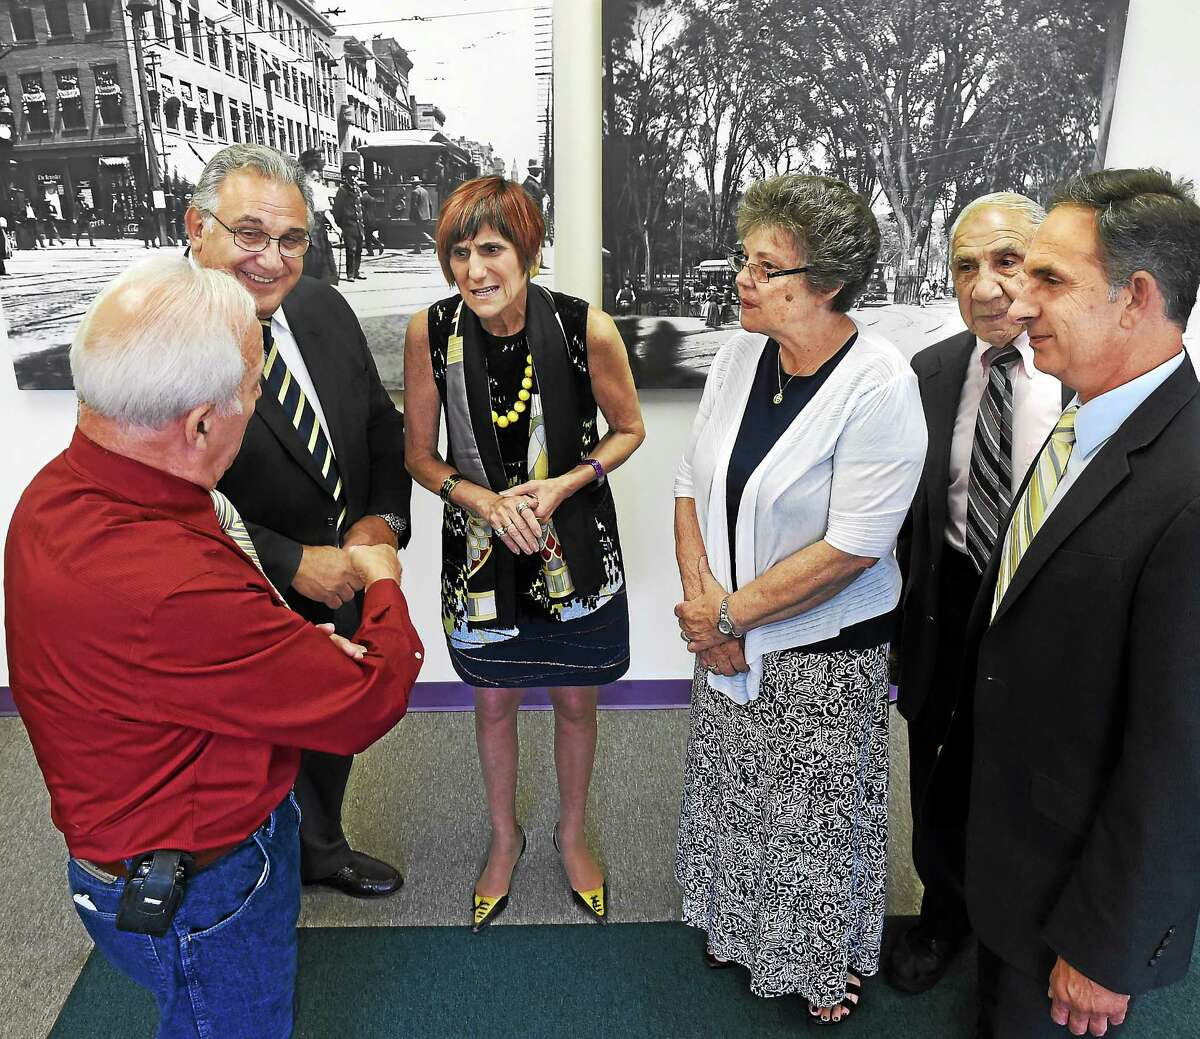 Members of the St. Patrick's Neighborhood Reunion committee and their honorees gathered in Congresswoman Rosa DeLauro's New Haven office. De Lauro is one of the honorees. From left: Committee chair John Ragozzino of North Haven, honoree Joe Celotto of Northford (North Branford), DeLauro, Joanne Lenzi Fresco of Branford, committee adviser Anthony Mastriano of North Haven, and State. Rep. David Yaccarino of North Haven.